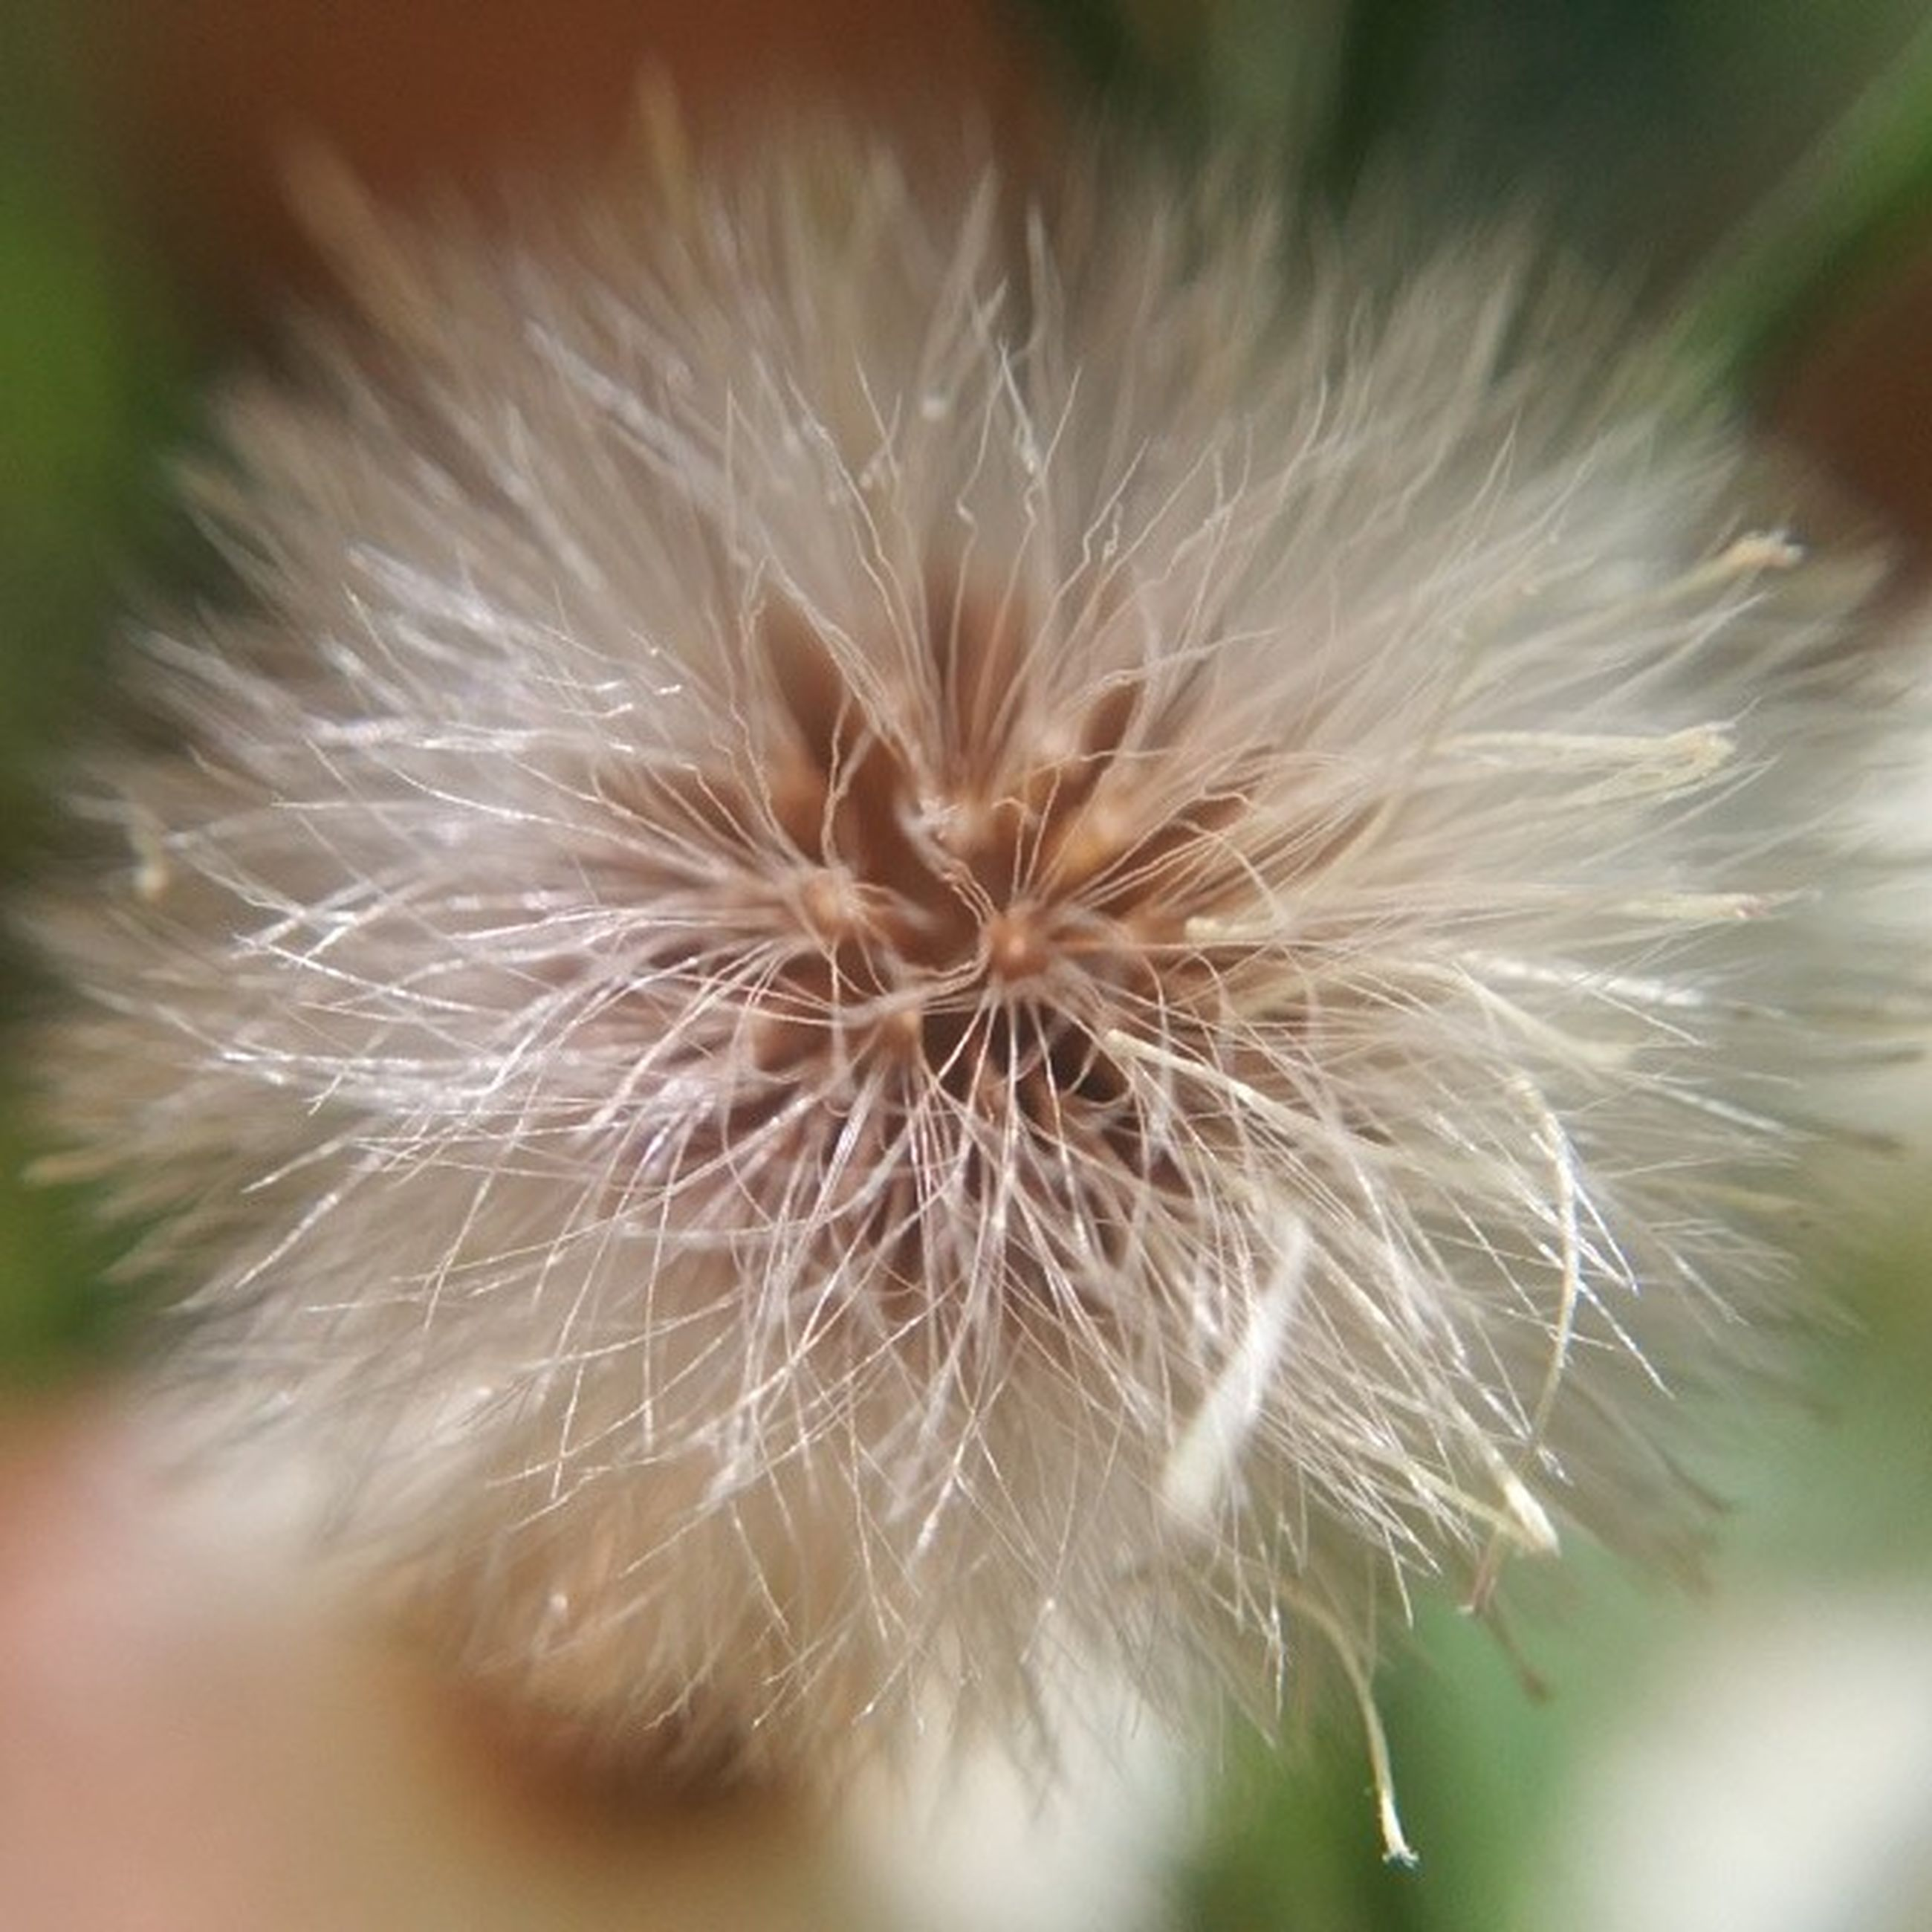 dandelion, flower, close-up, fragility, flower head, growth, single flower, focus on foreground, freshness, beauty in nature, nature, selective focus, softness, white color, wildflower, uncultivated, seed, plant, botany, dandelion seed